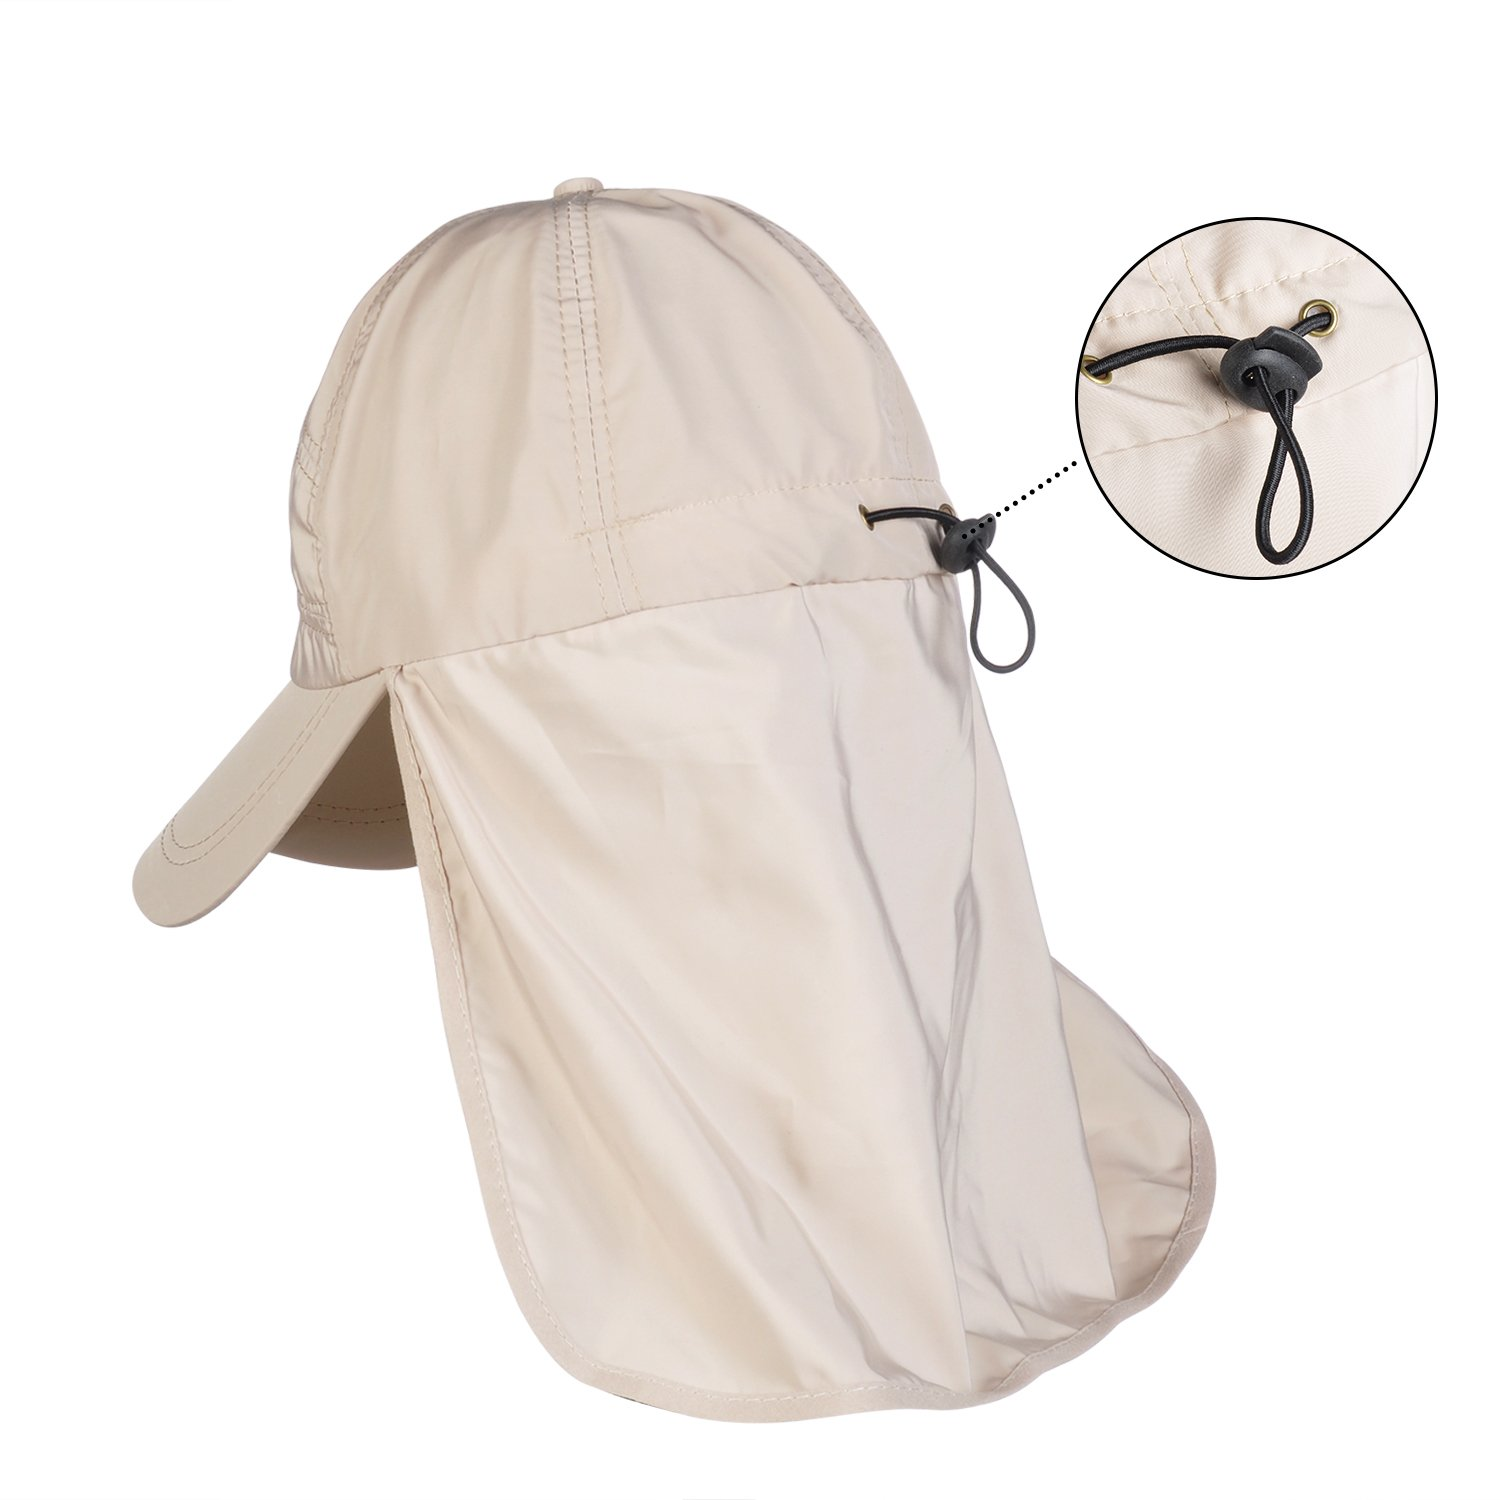 Kids Sun Hat Protection Waterproof Sporty Flap Swim Hat UV Cap for Boy's Girl